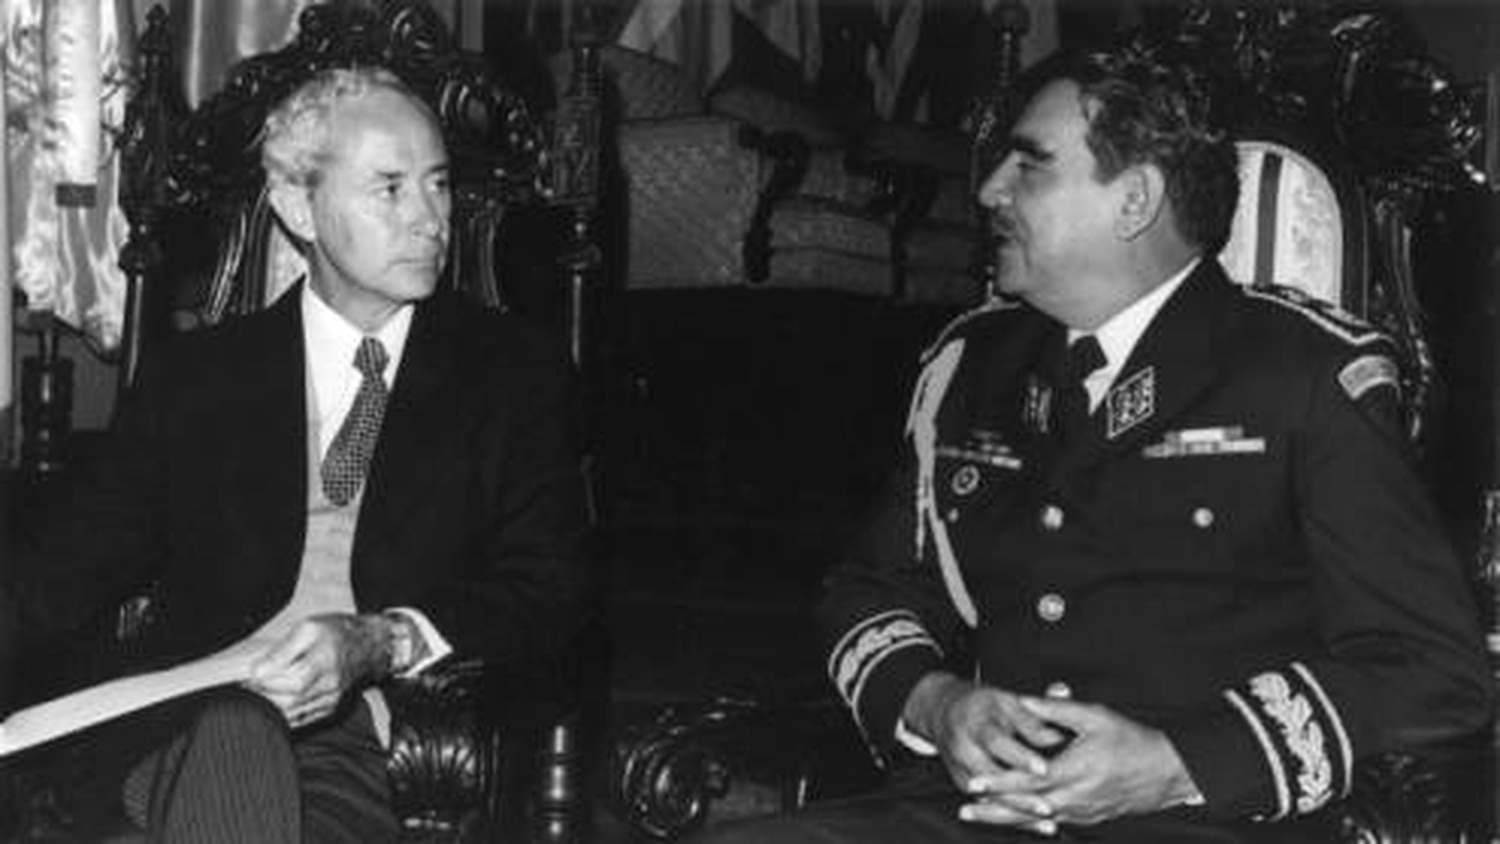 Ambassador Frank Ortiz from New Mexico meeting with Fernando Romeo Lucas García, who served as President of Guatemala from 1978-1982 and was decried for repressive and brutal leadership. Photo courtesy Palace of the Governors Photo Archive, Negative #HP.2008.18.3.